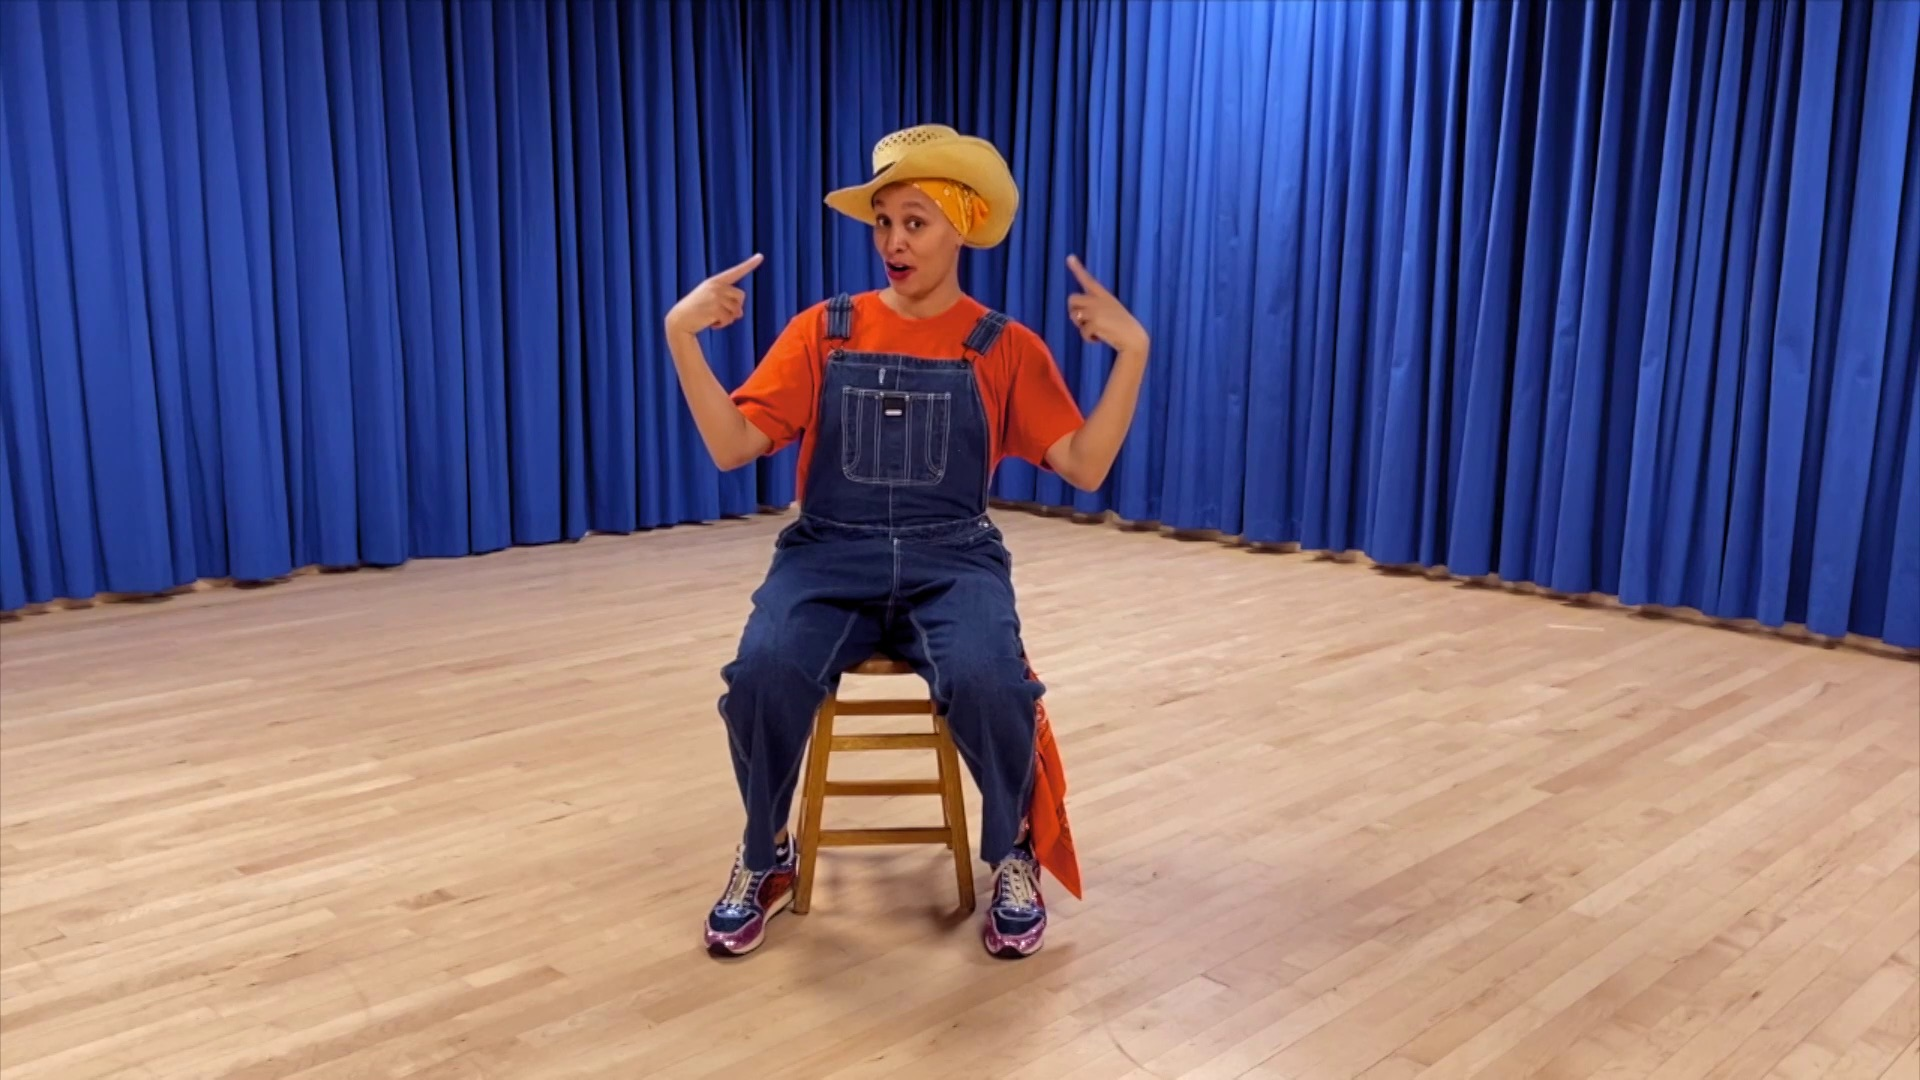 A woman wearing blue overalls and orange t-shirt and floppy hat sits on a chair in middle of dance floor. Behind her are bright blue stage curtains.